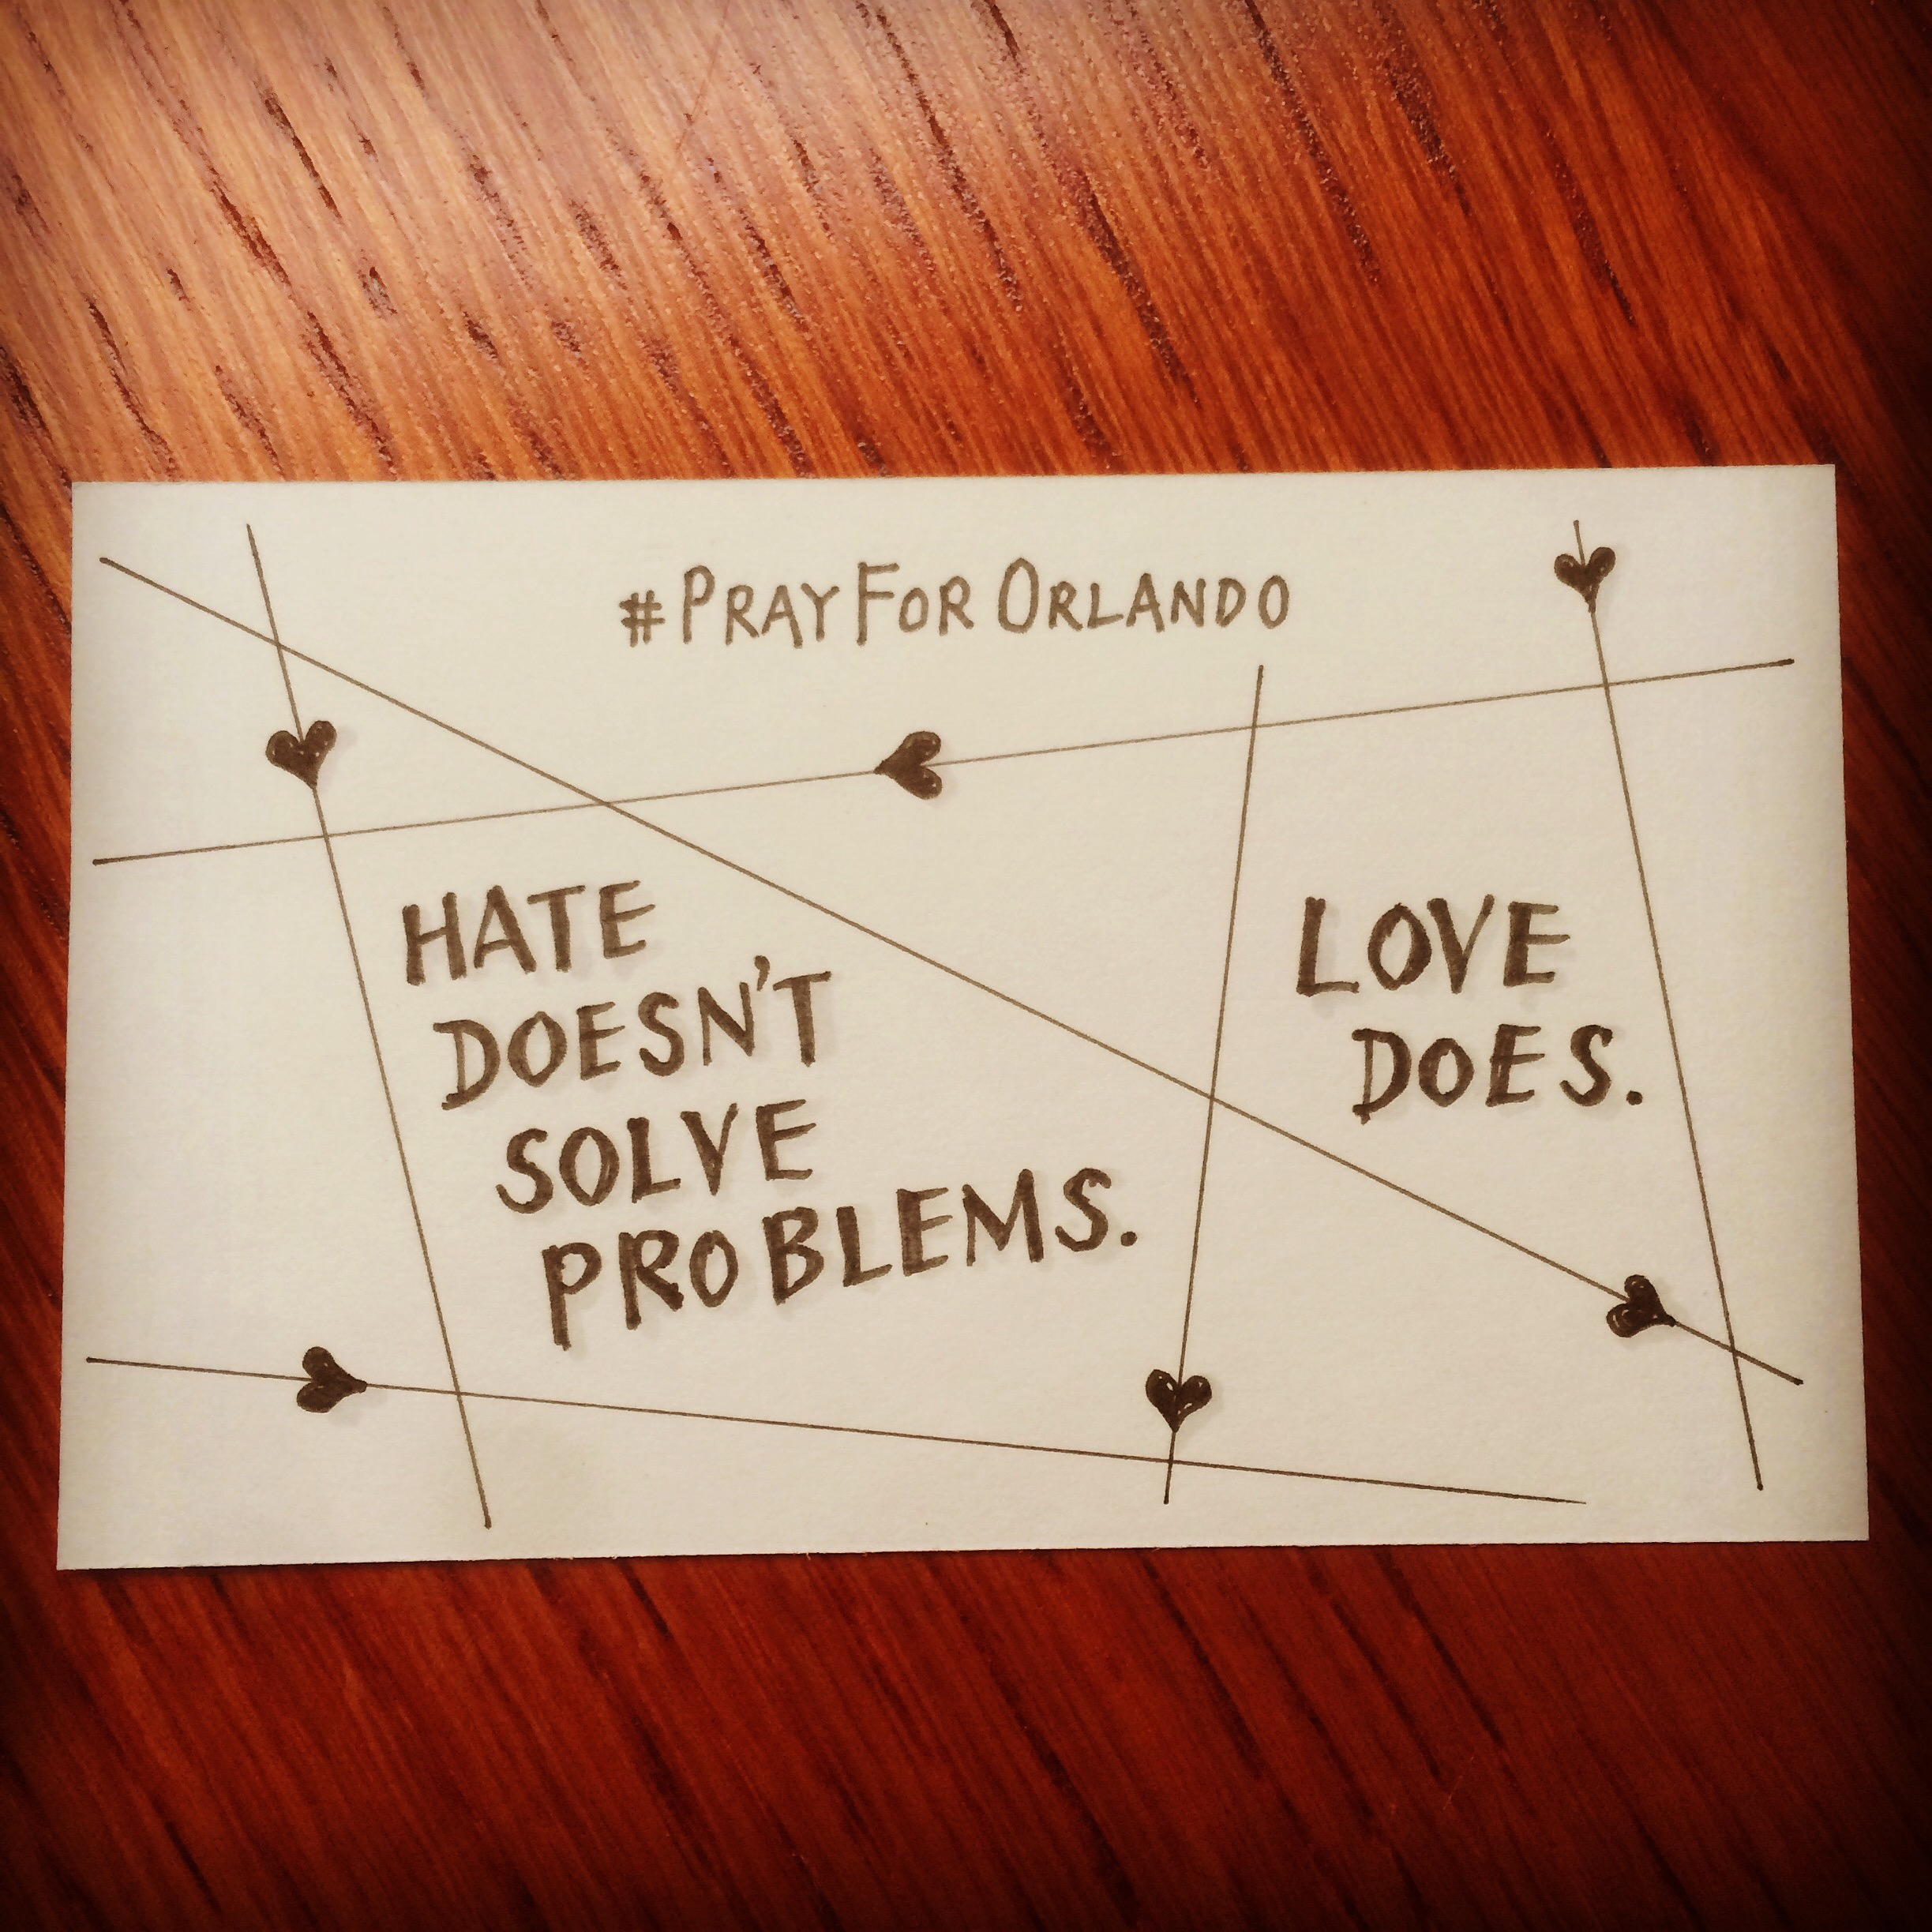 Hate doesn't solve problems. Love does.